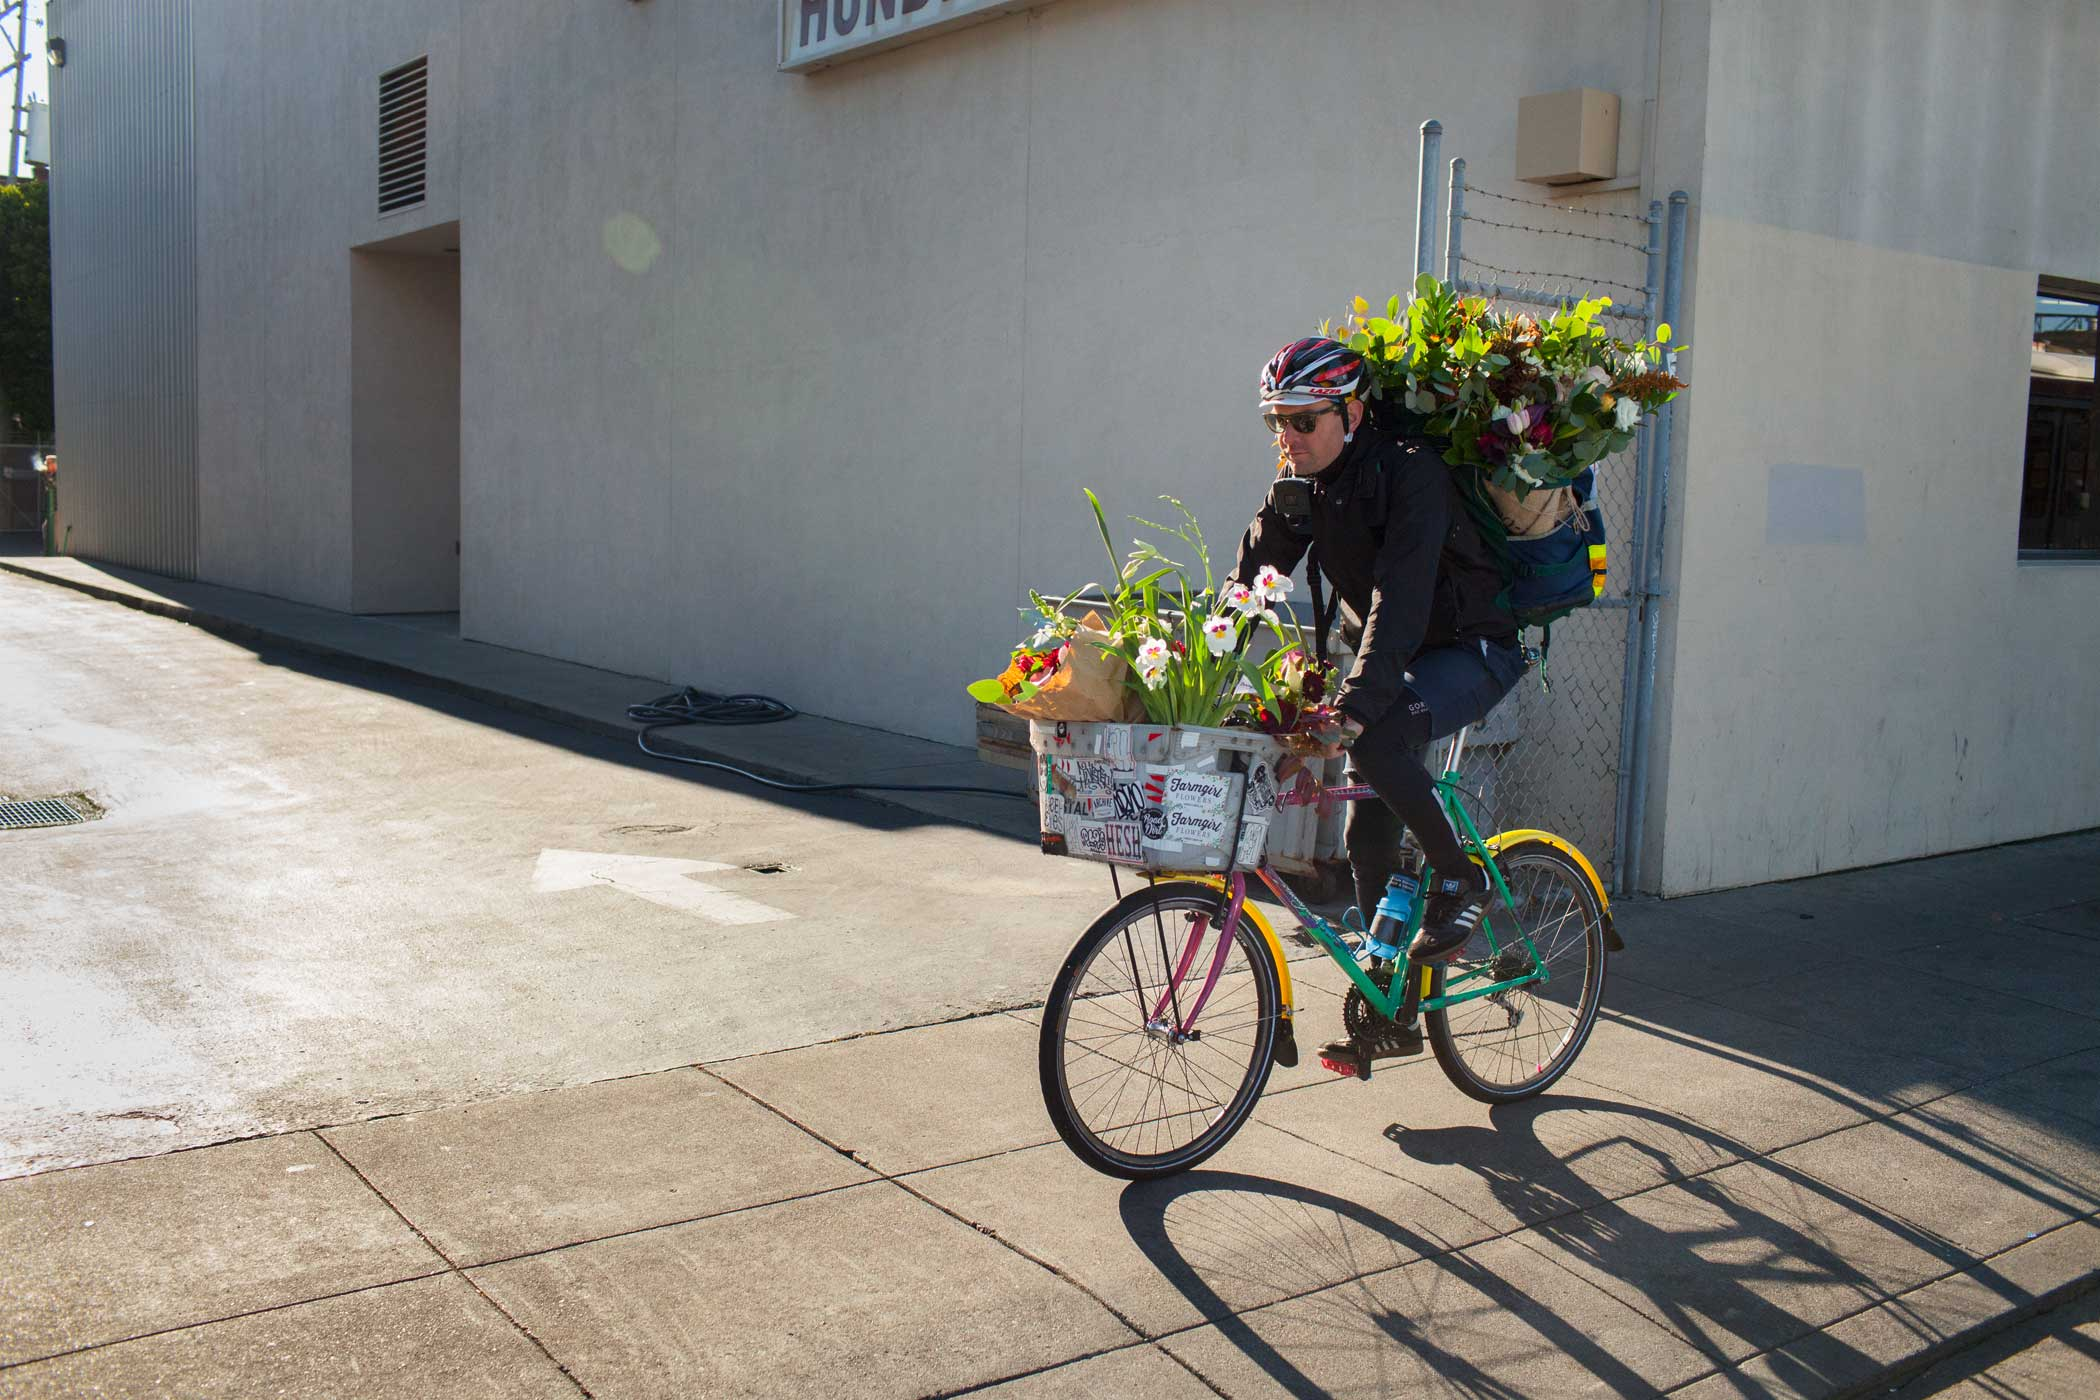 A flower delivery employee bikes to deliver his first flowers of the day.